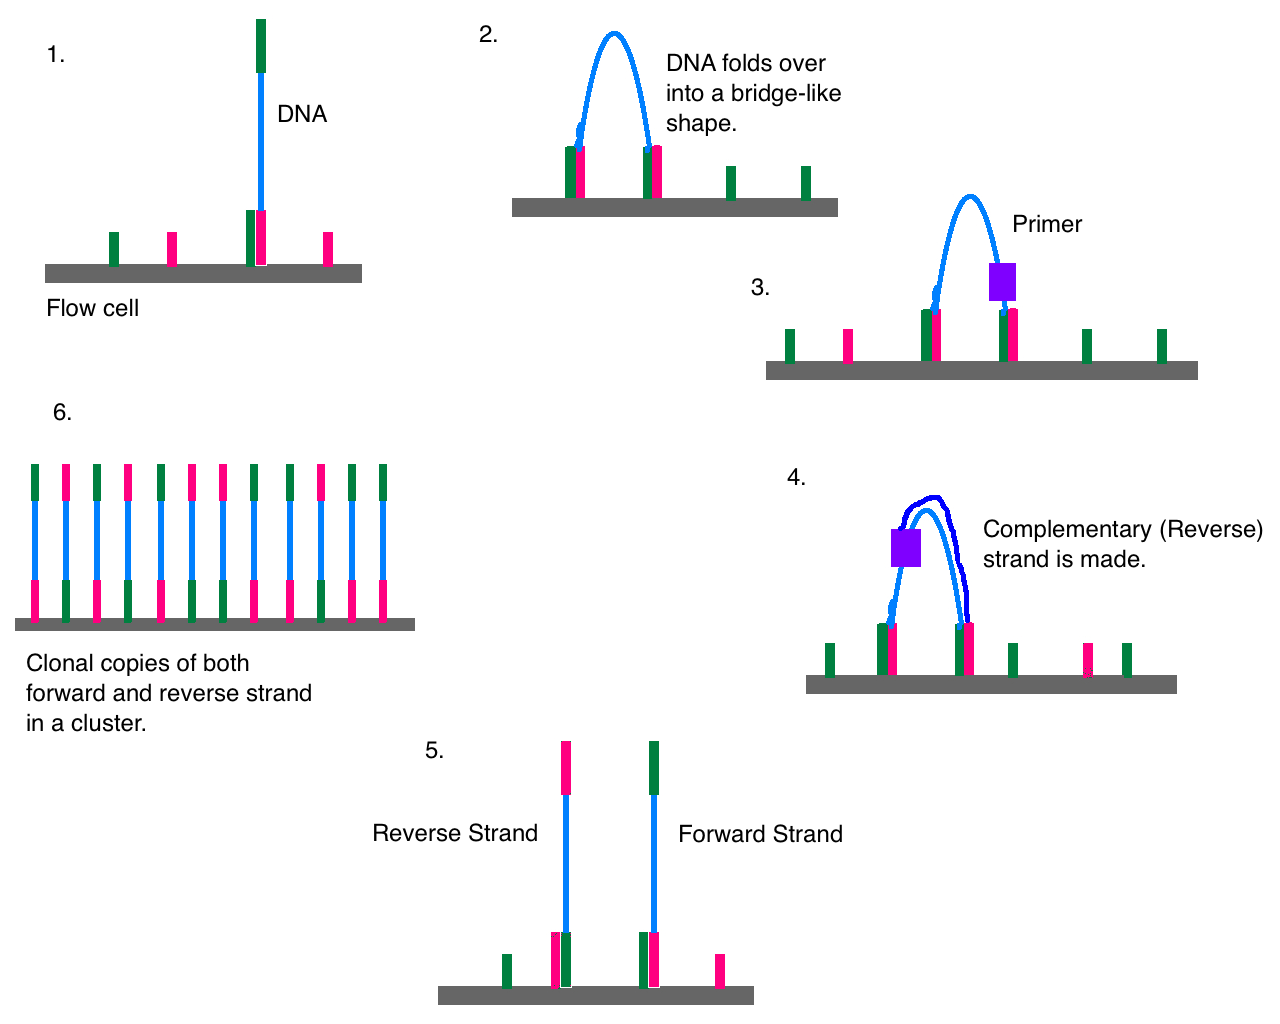 Difference Between Whole Genome Sequencing and Next Generation Sequencing